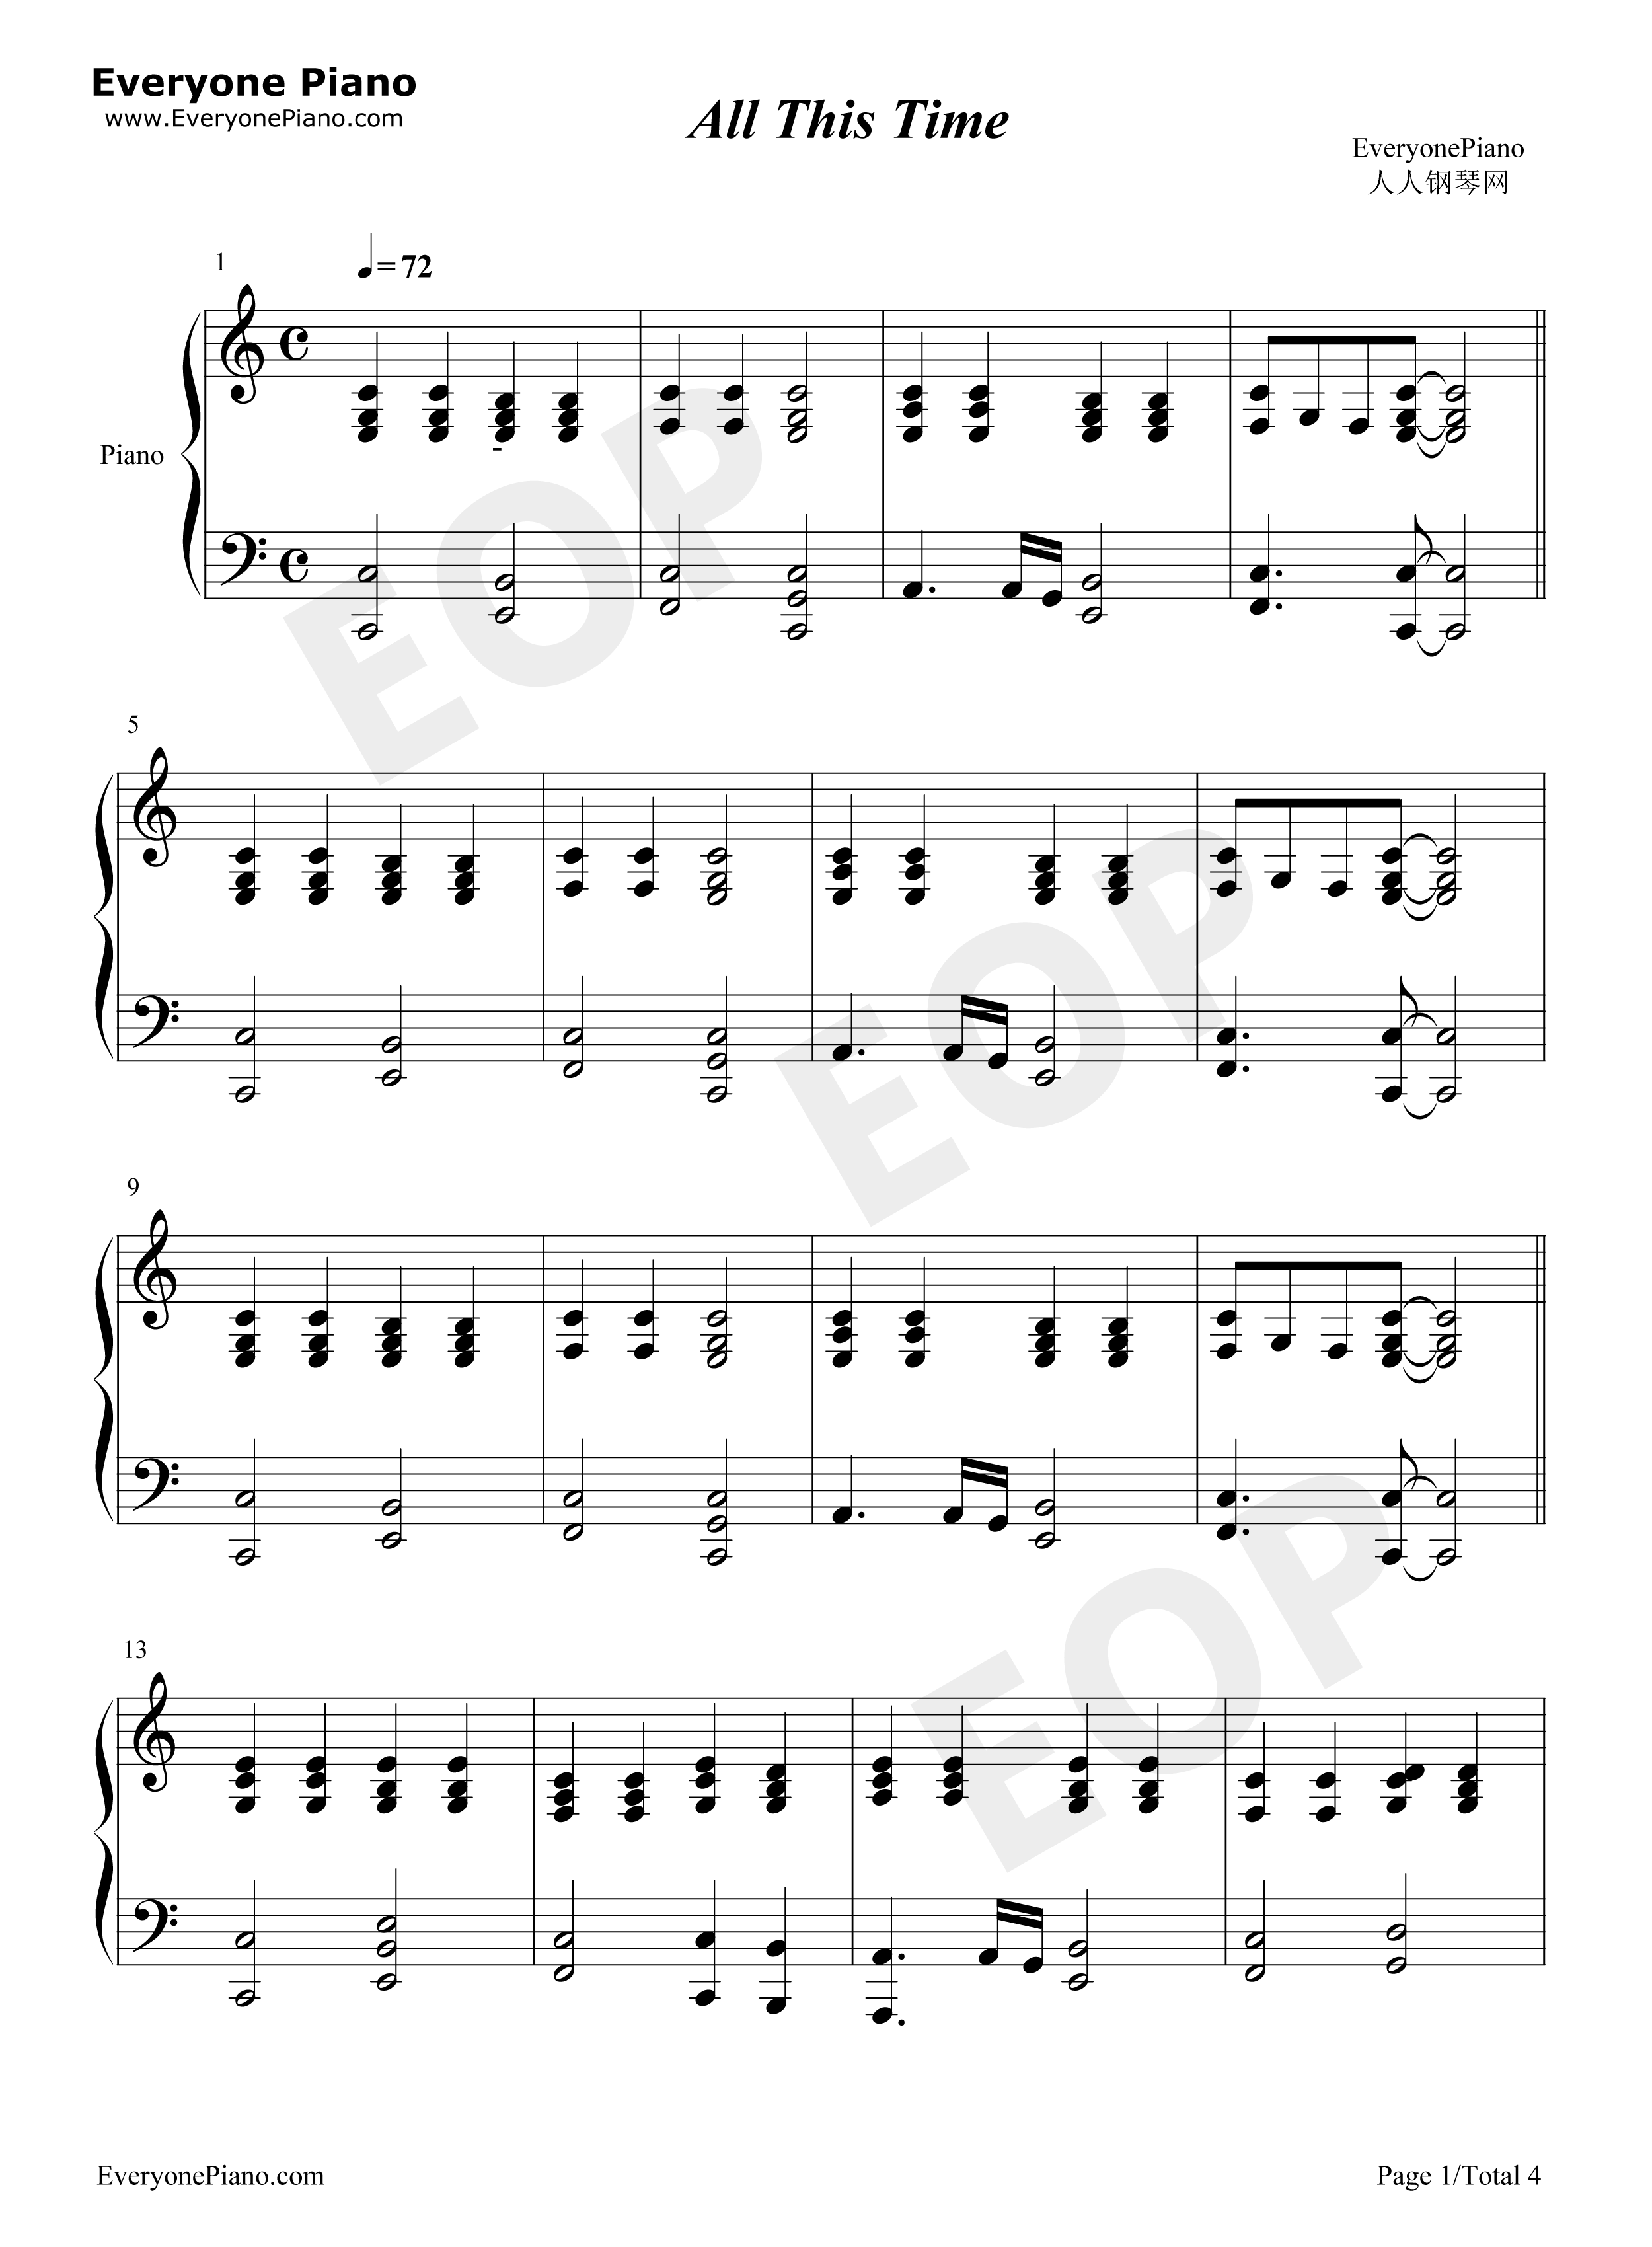 All this time chord stave preview 1 free piano sheet music listen now print sheet all this time chord stave preview 1 hexwebz Image collections